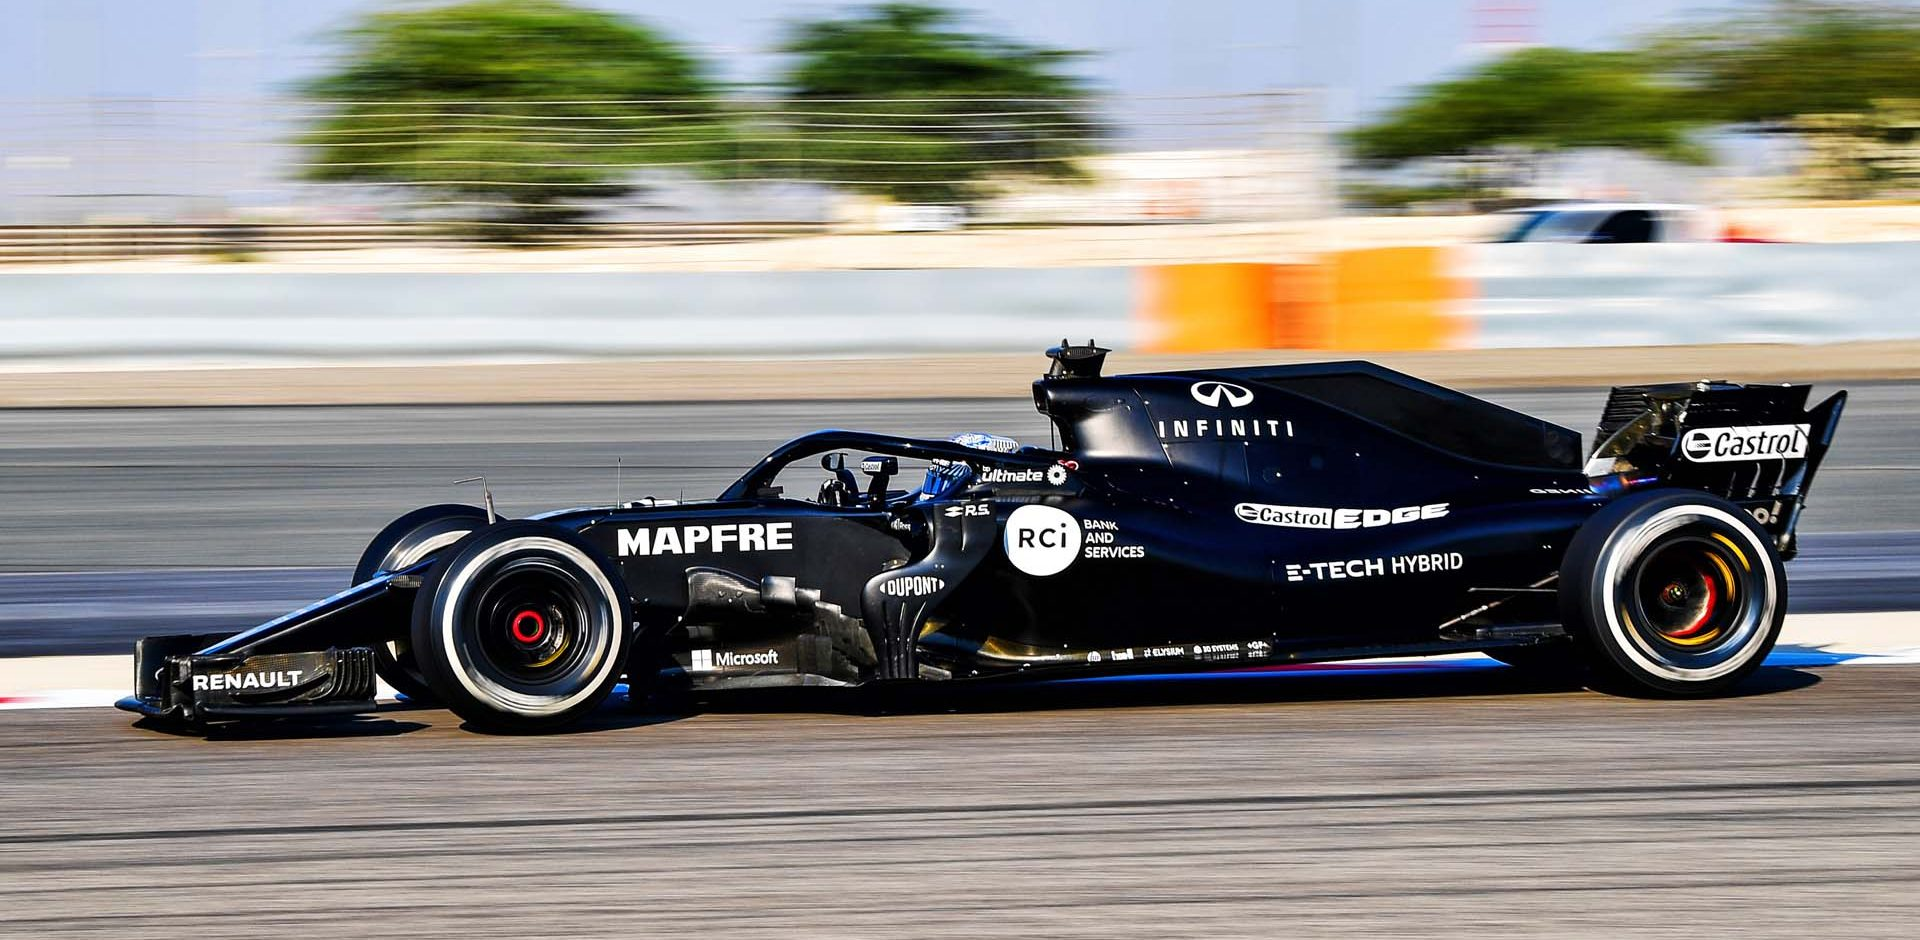 Fernando Alonso (ESP) in the Renault F1 Team RS18. RS18 Bahrain Test, Wednesday 4th November 2020. Sakhir, Bahrain.